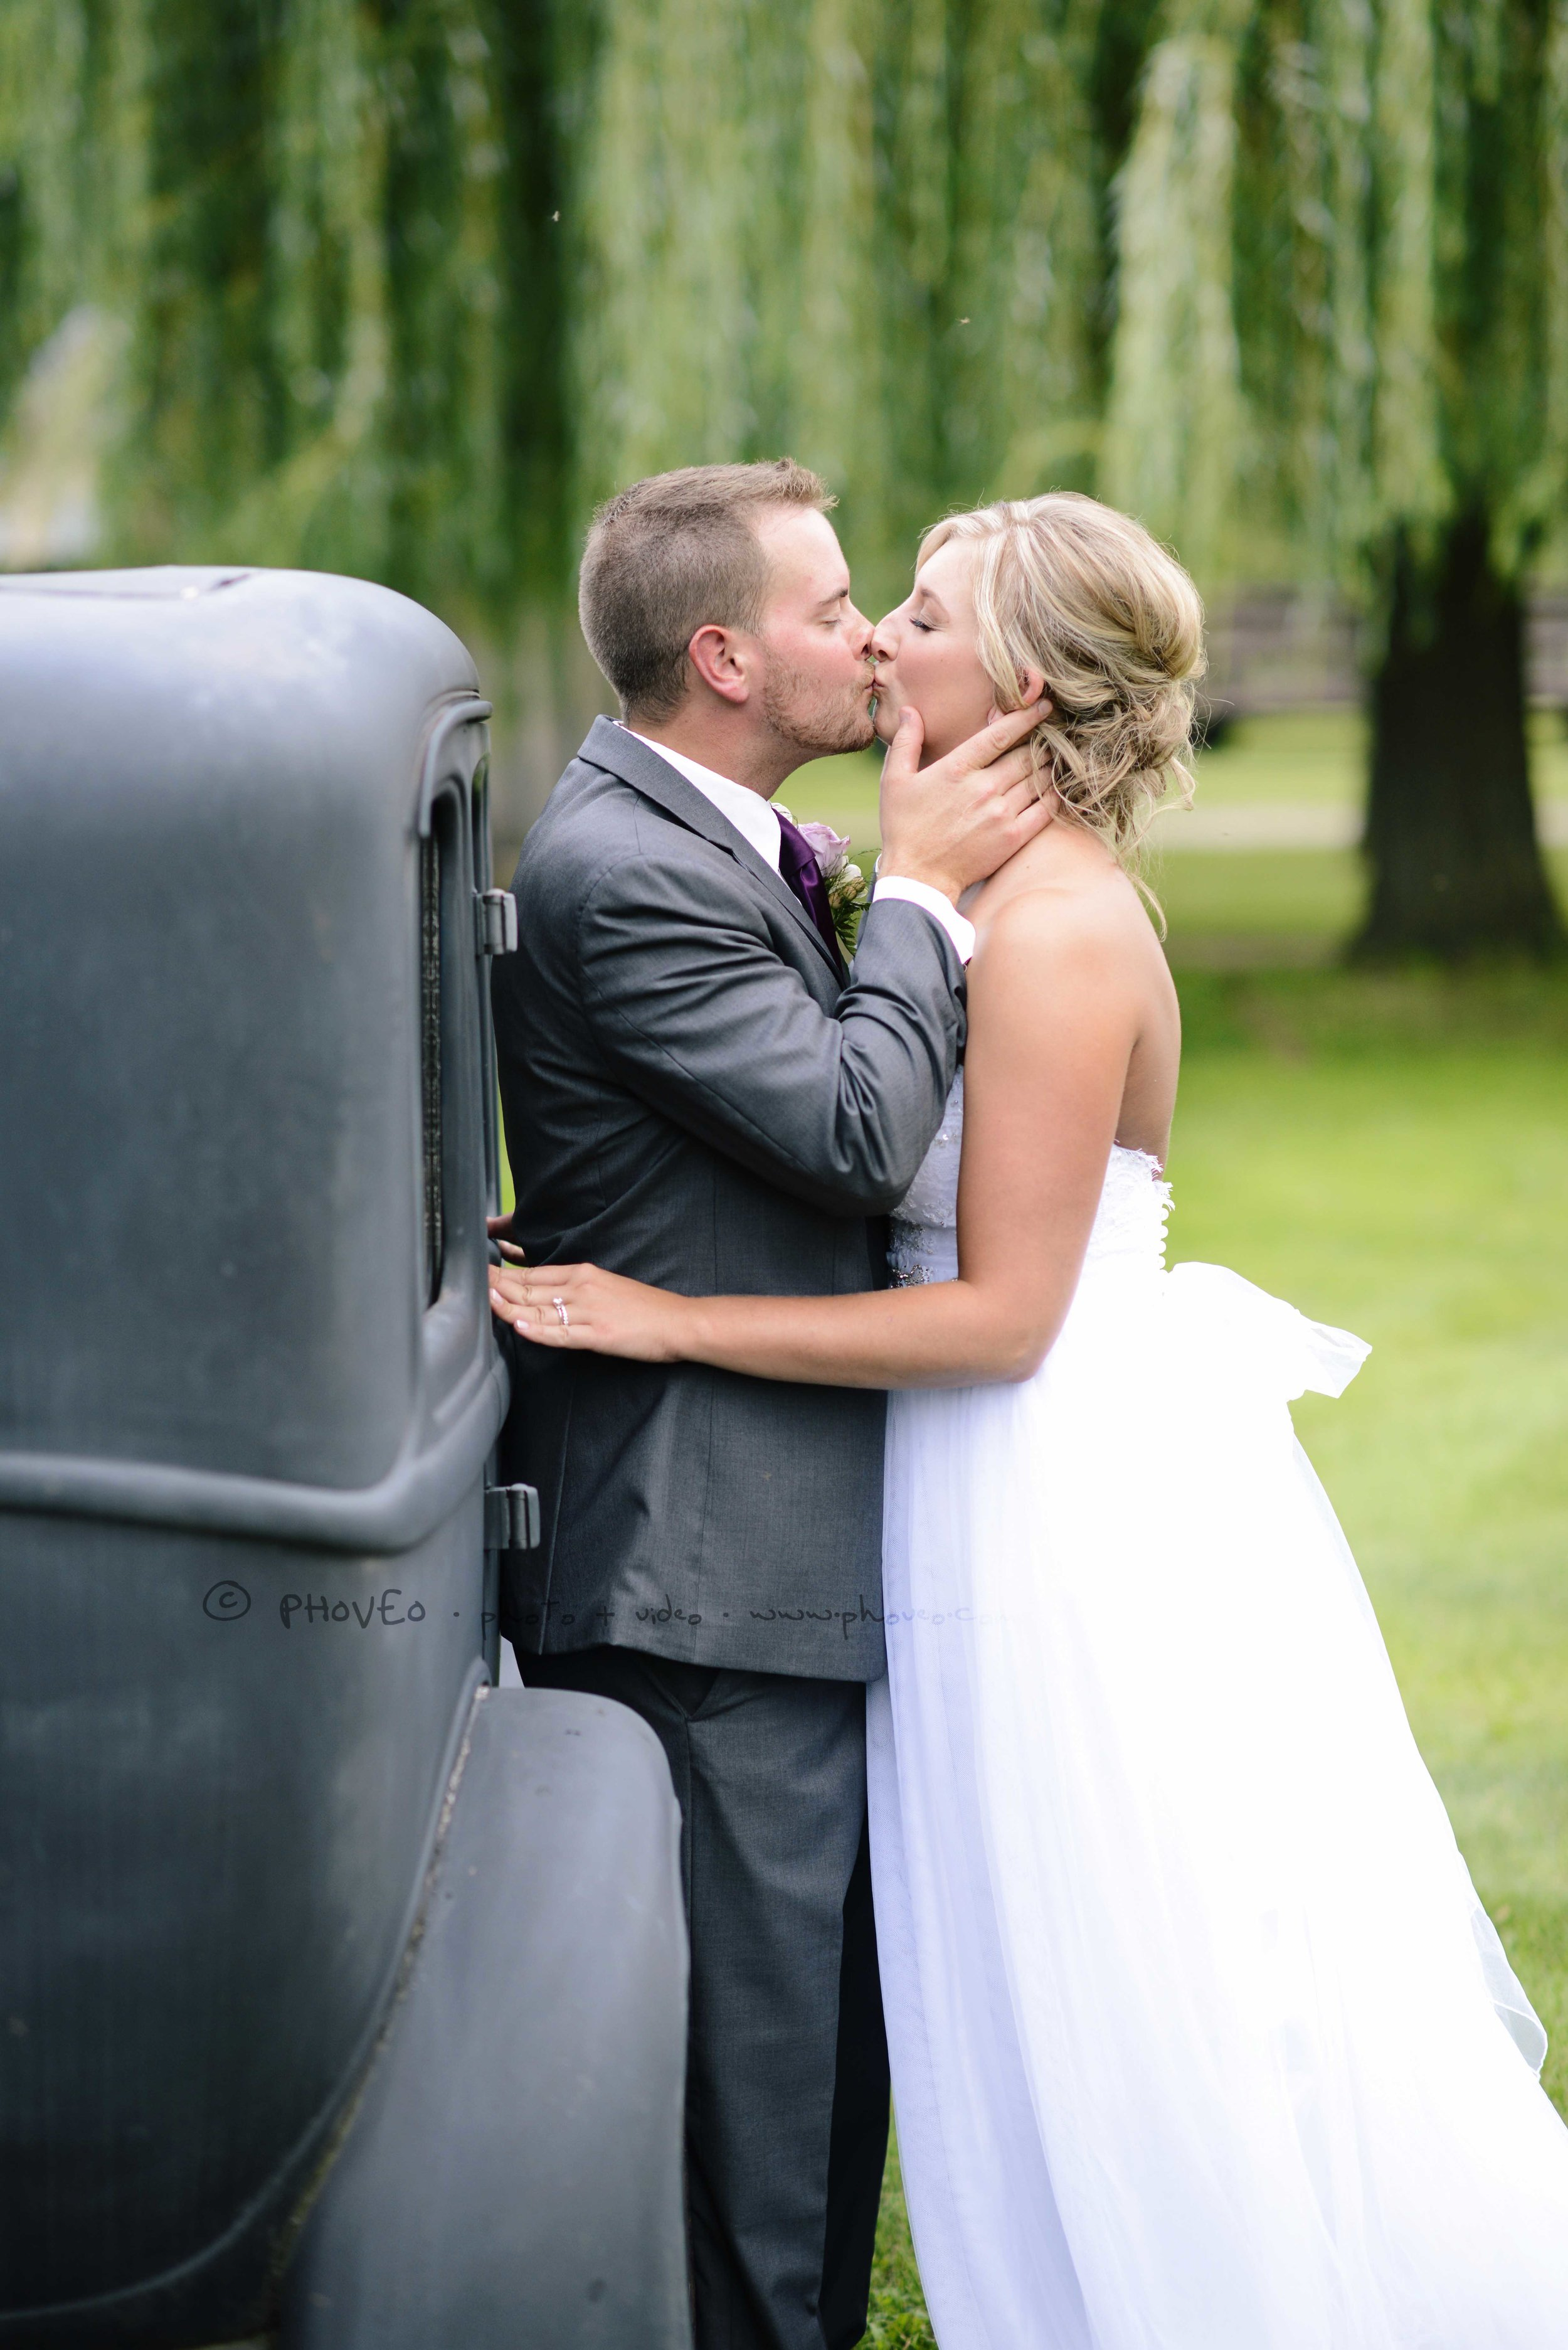 WM_20160826_Katelyn+Tony_91.jpg